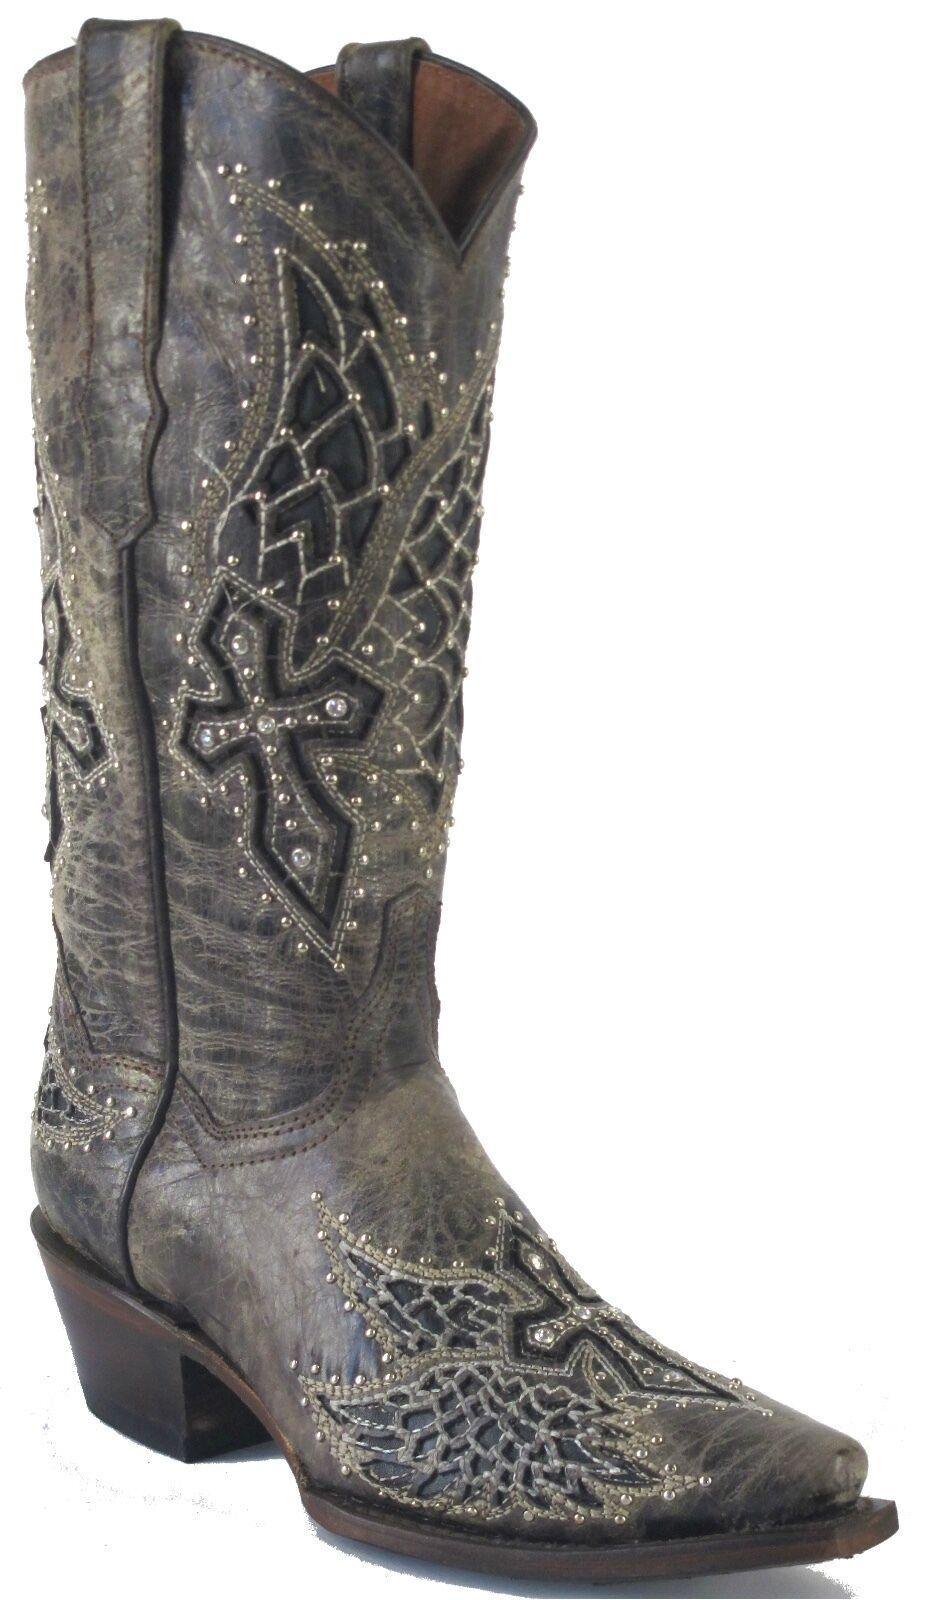 Women's Wings Cross Stud Distressed Leather Cowgirl Western Boots Snip Brown